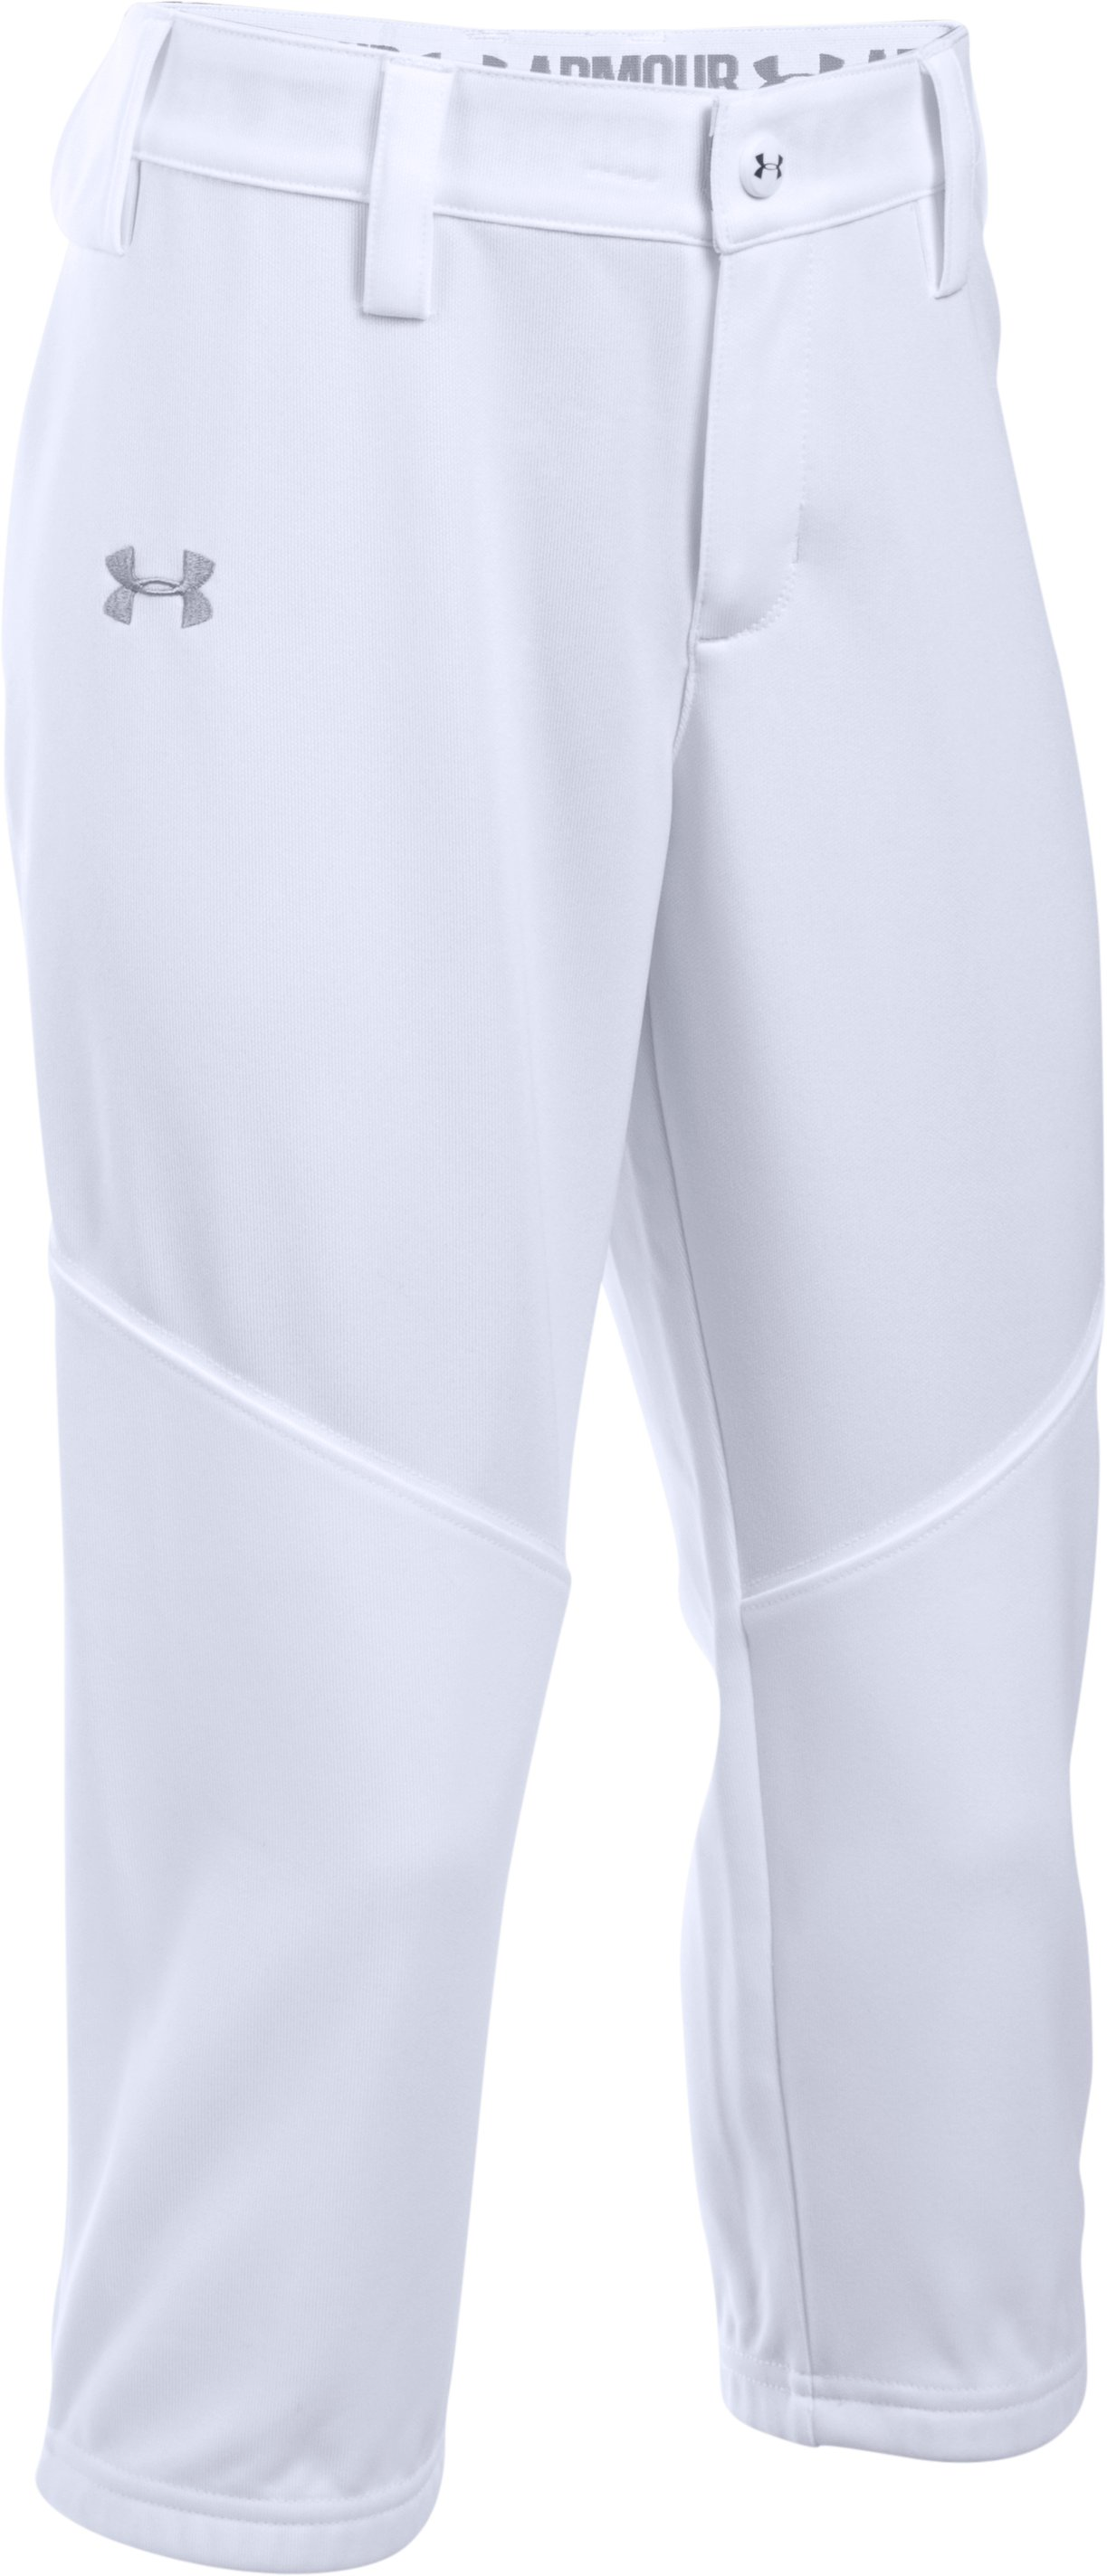 Girls' UA Base Runner Softball Pants, White,